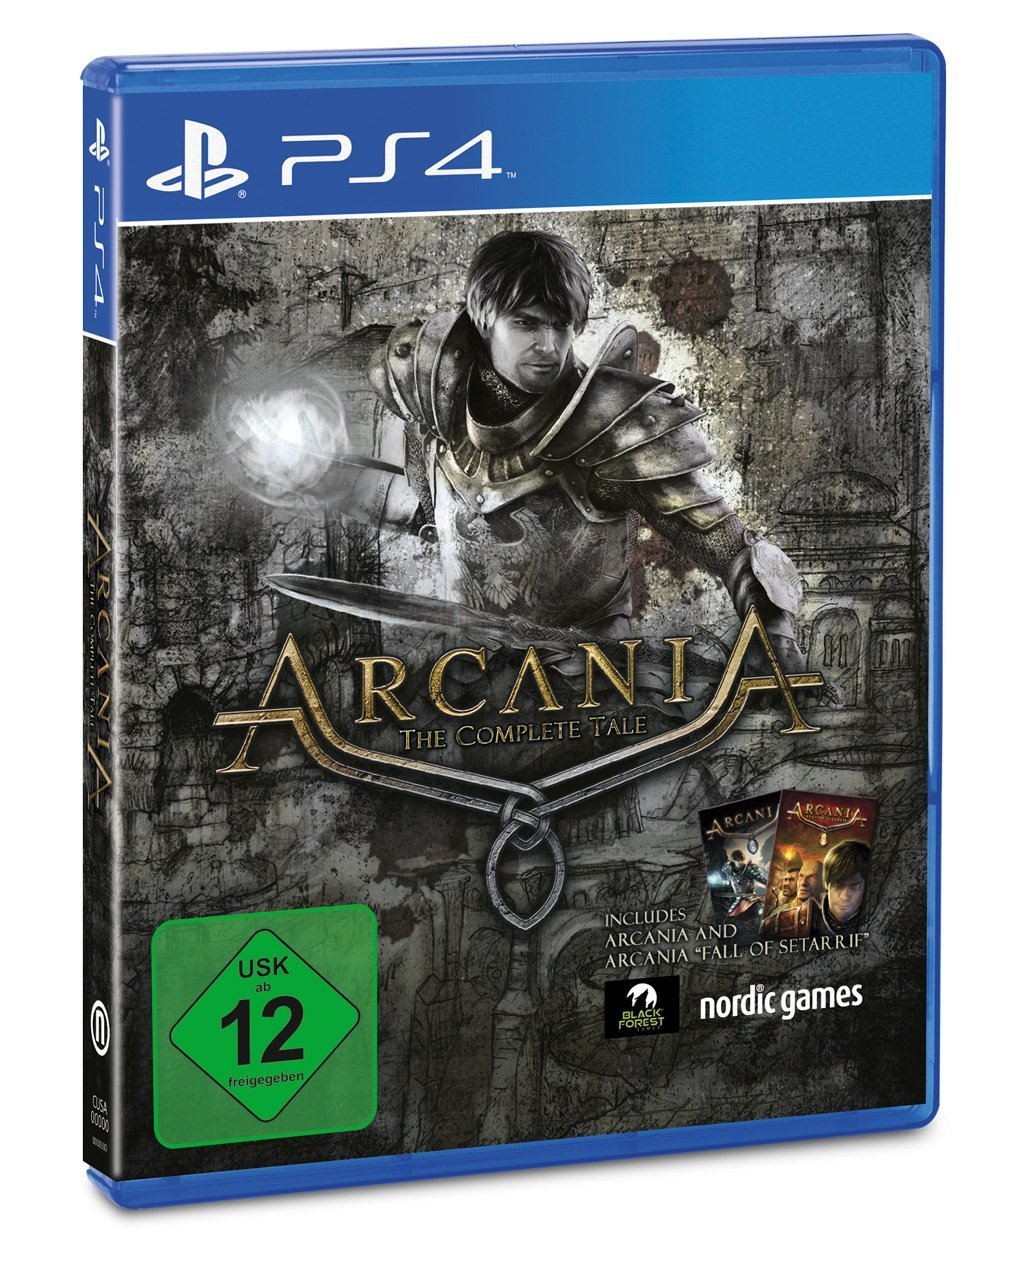 arcania-the-complete-tale